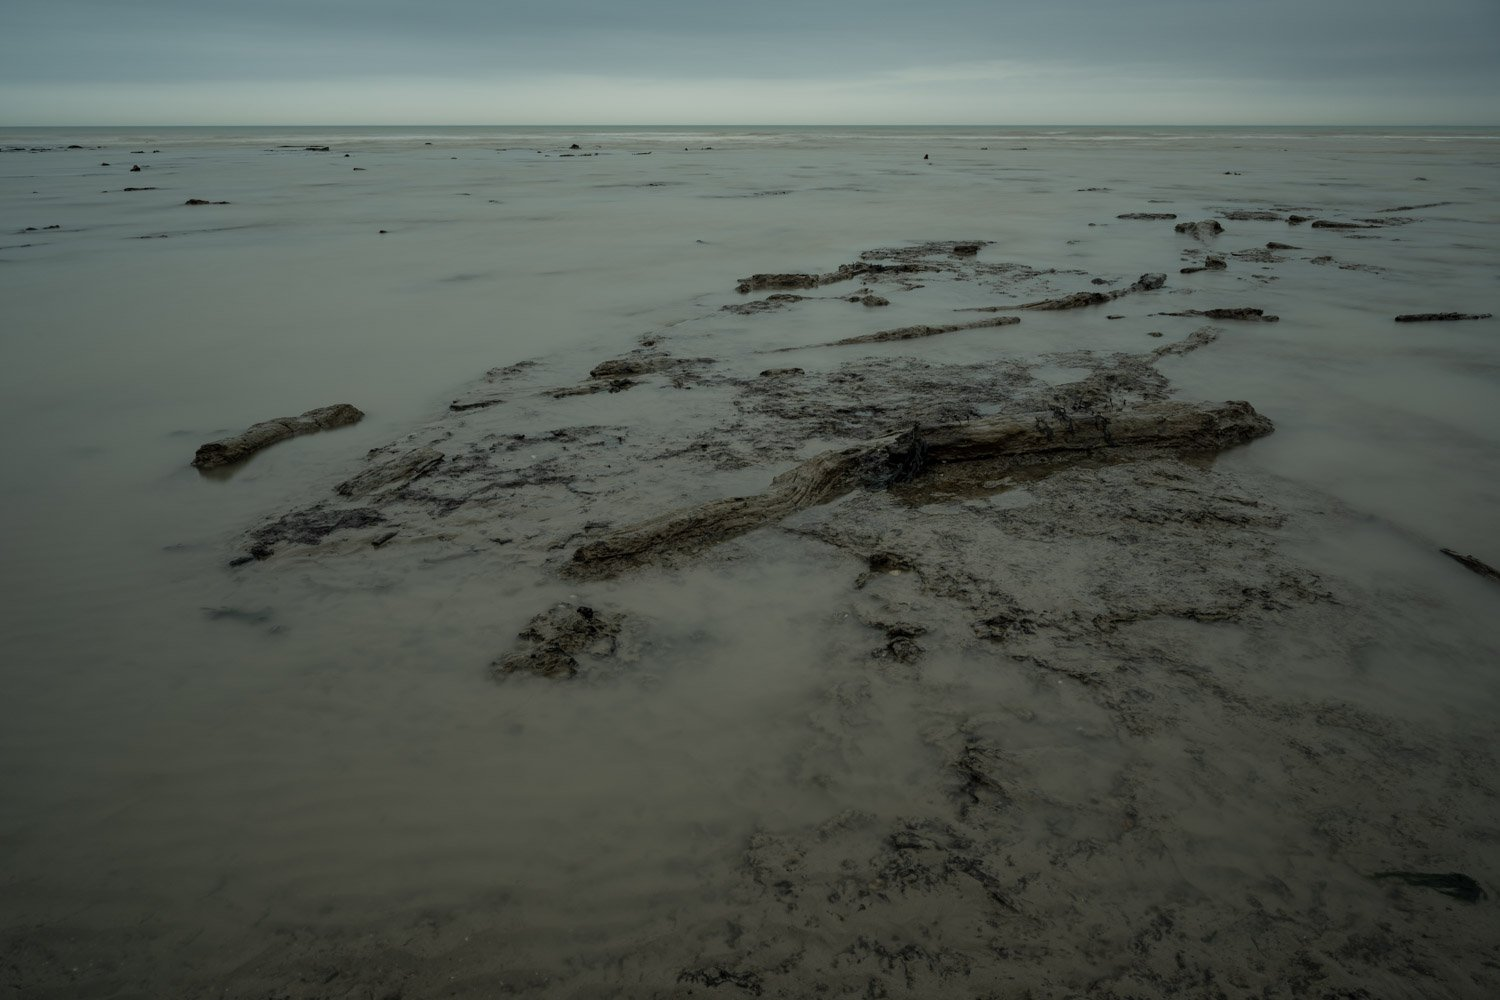 Jeremy Llewellyn Jones - The ancient forest Pett Level beach East Sussex